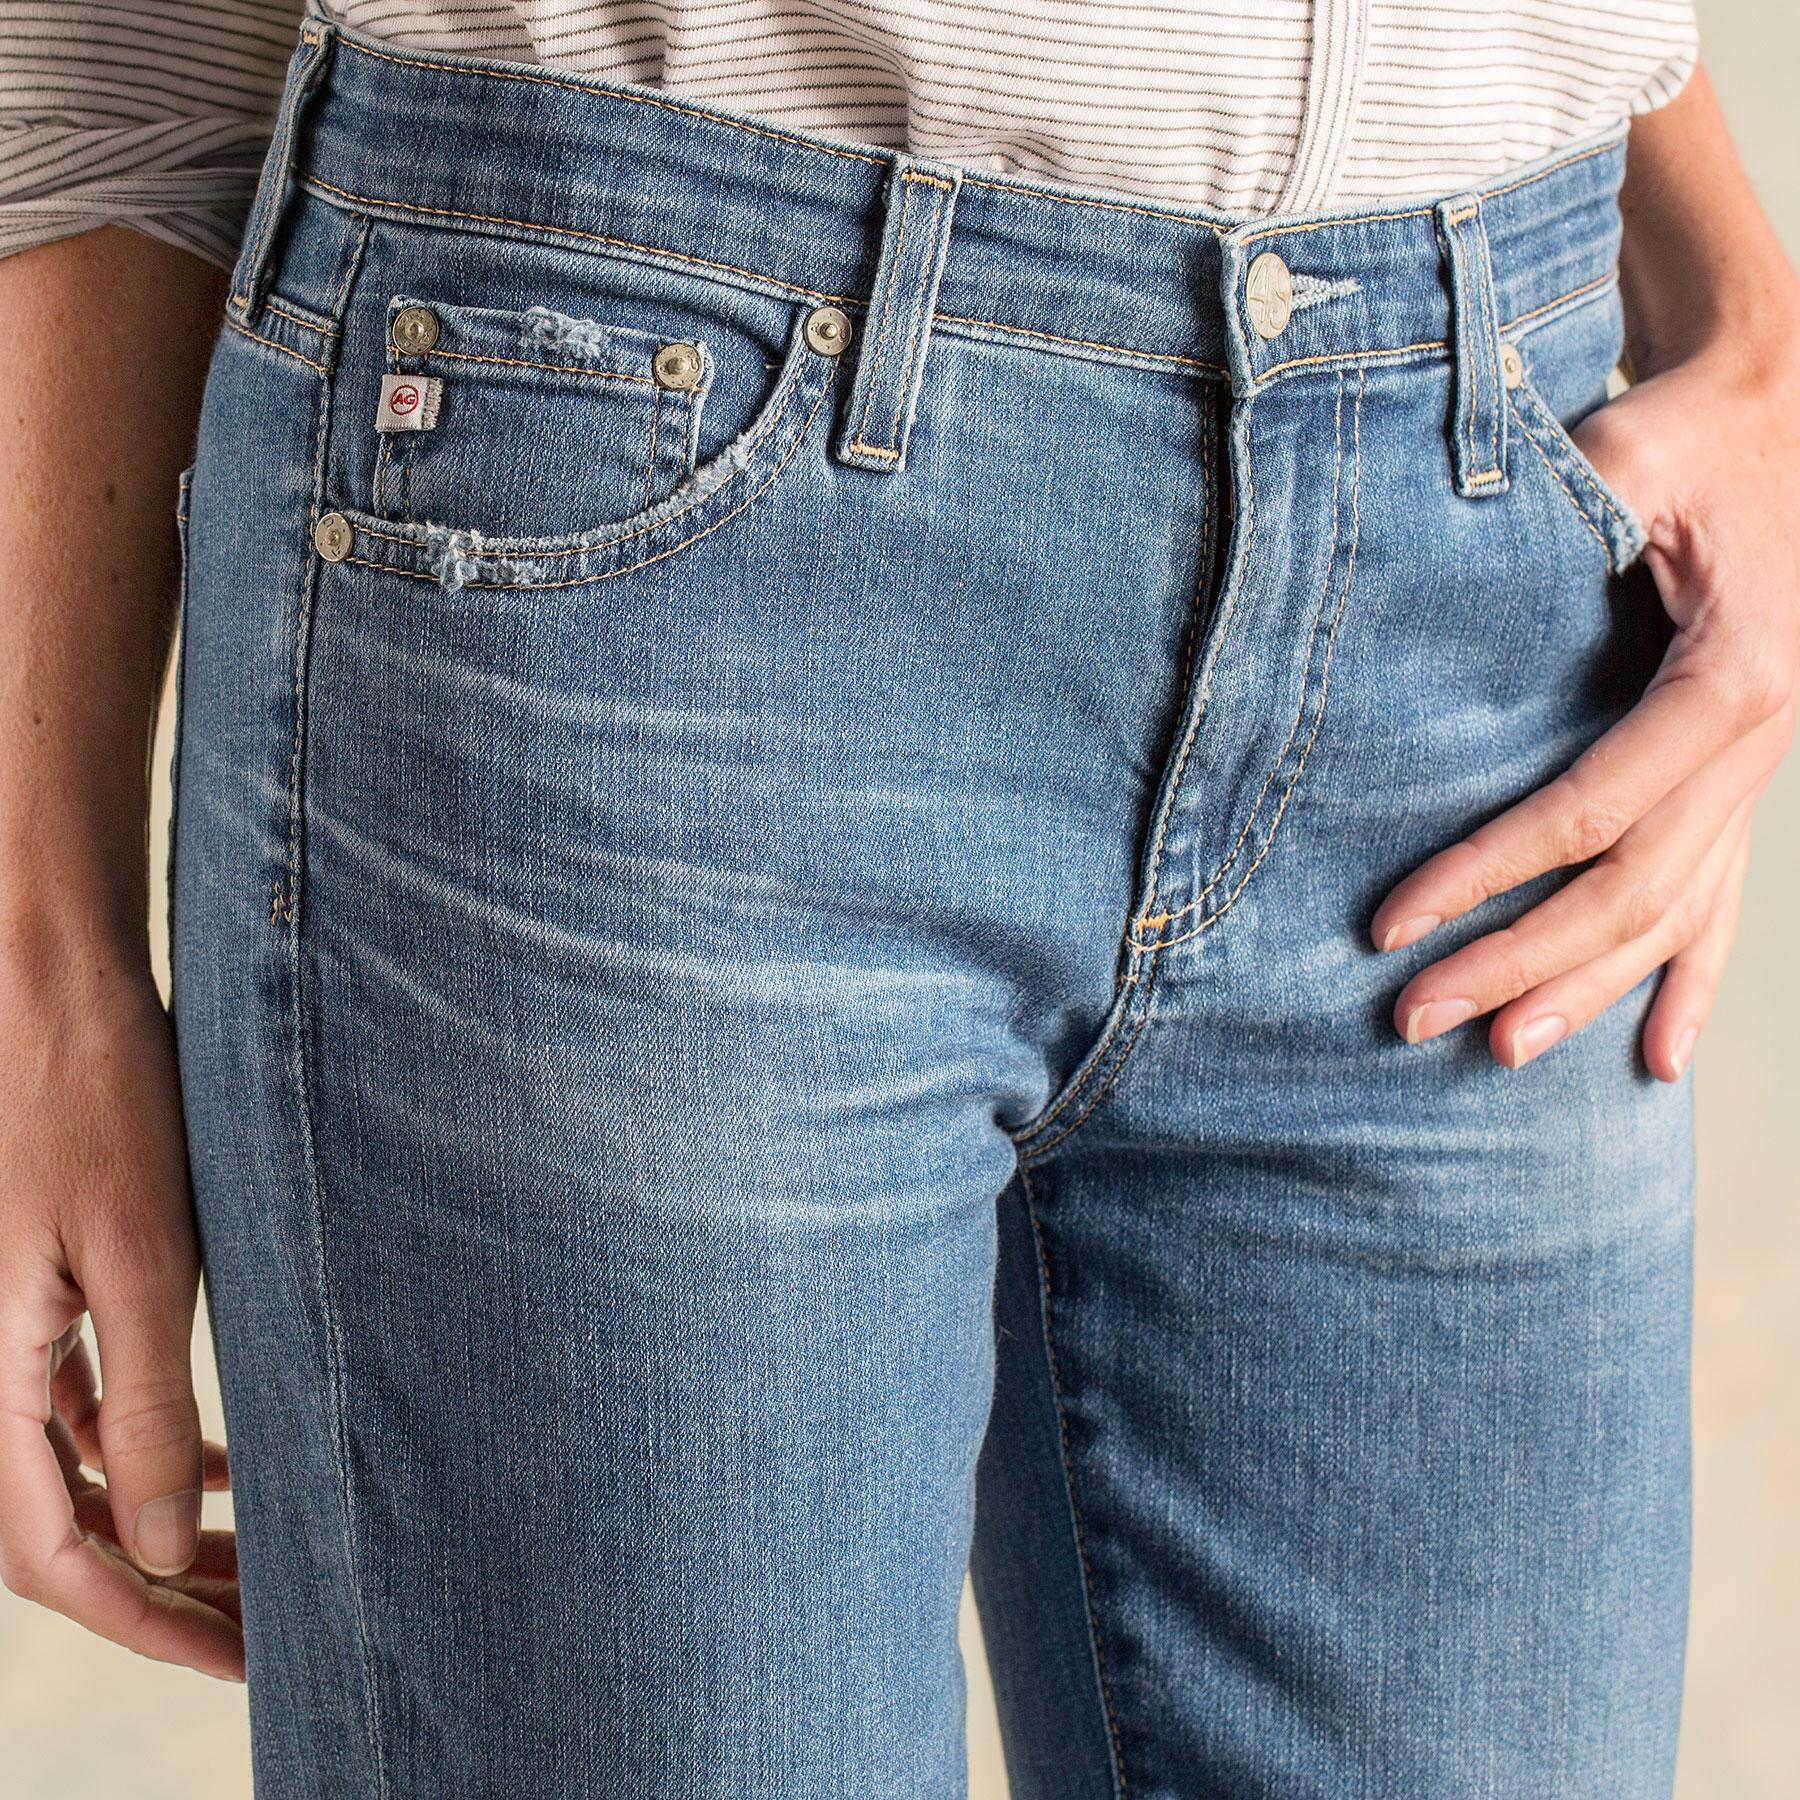 VINTAGE PRIMA JEANS BY A G: View 4